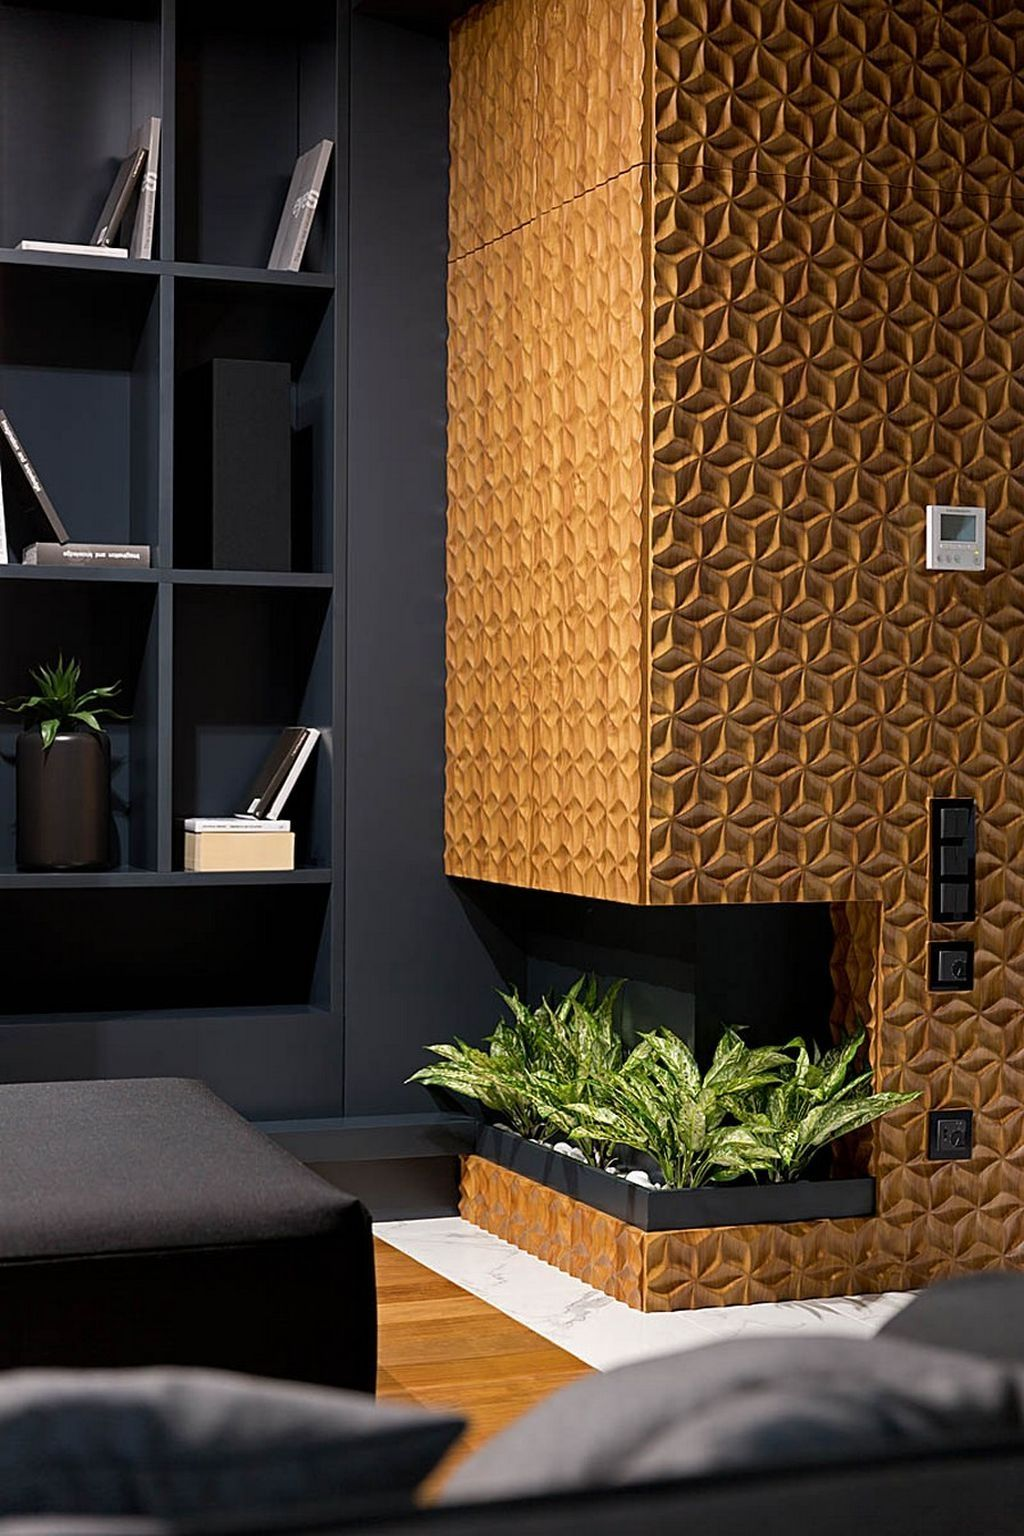 Fine 54 Amazing Texture And Pattern Ideas For Interior Design Contrast Interior Design Wall Texture Design Interior Design #texture #for #living #room